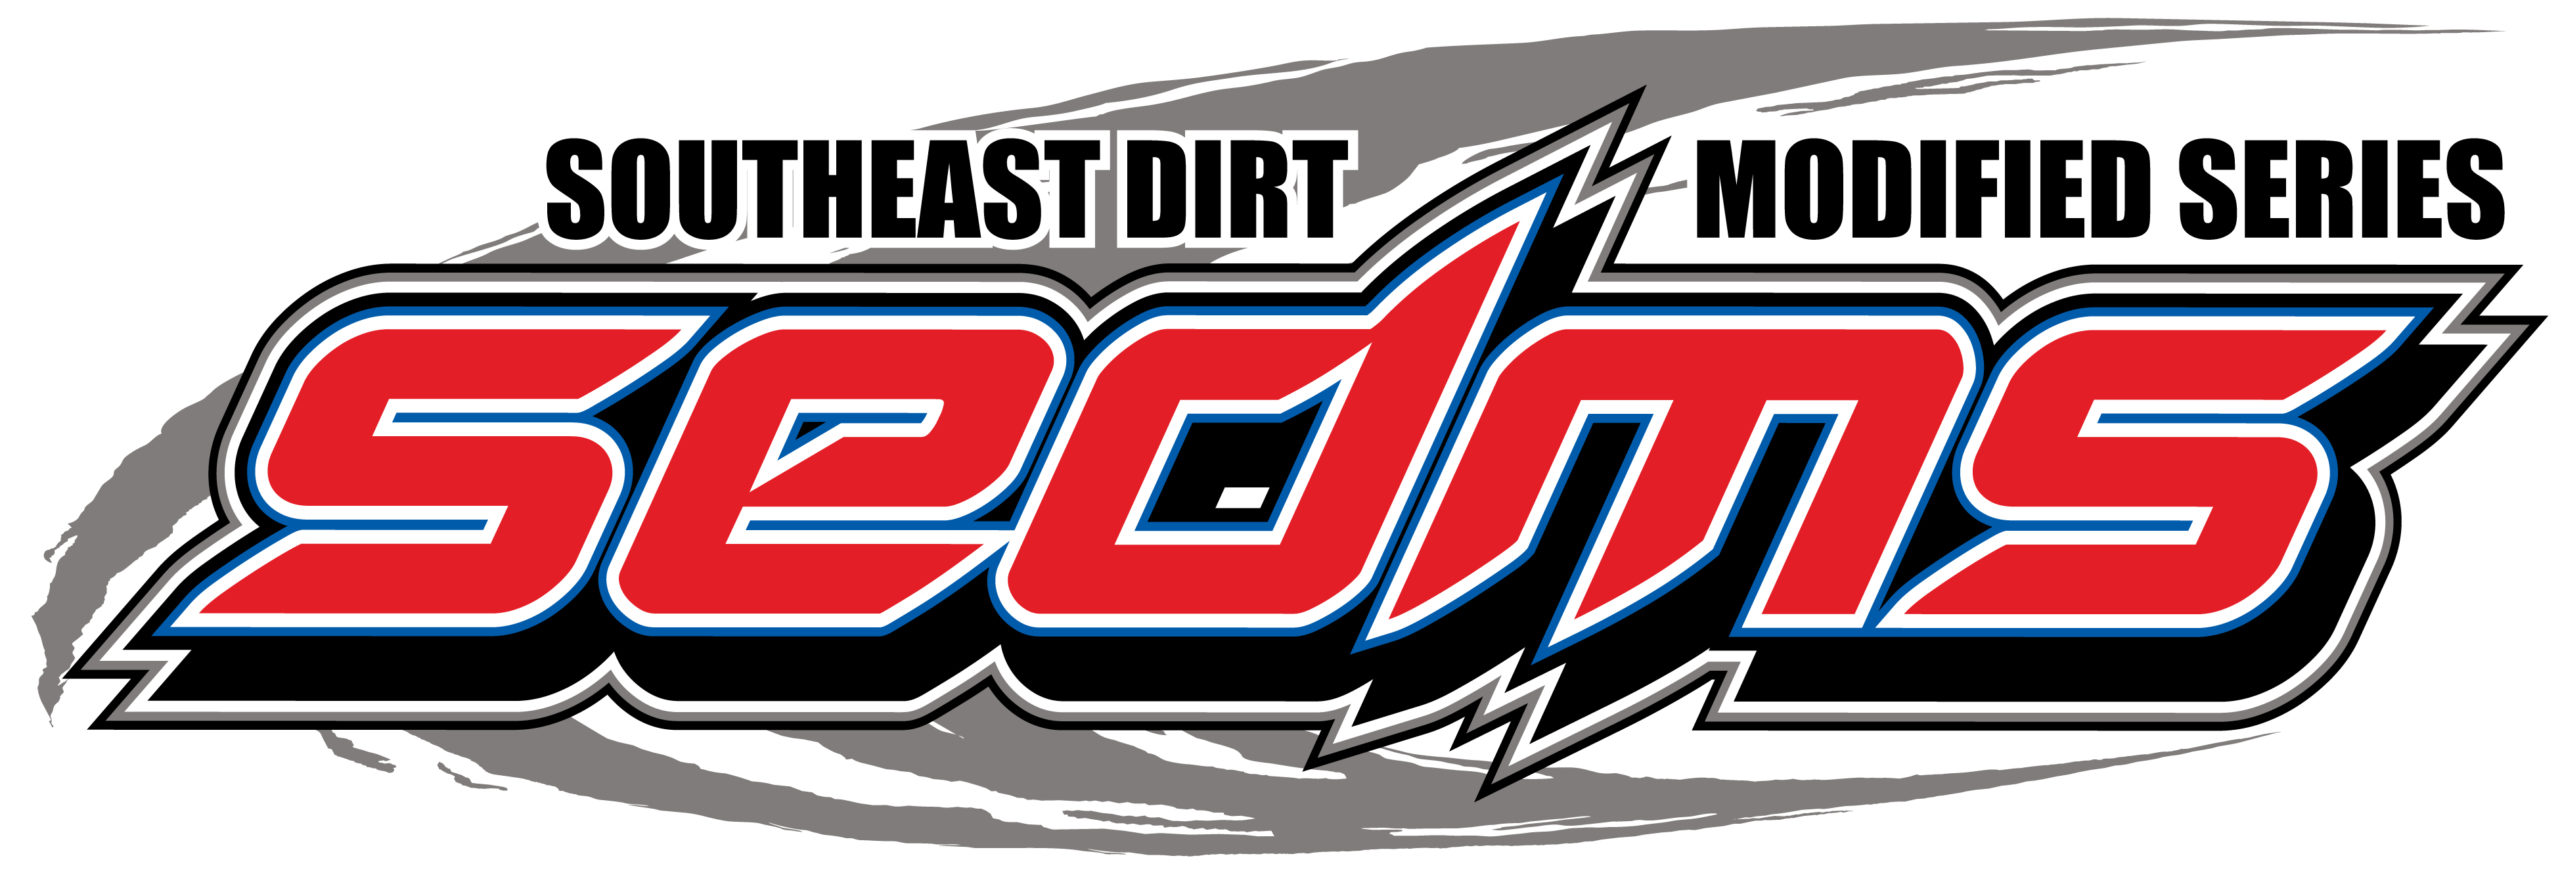 Southeast Dirt Modified Series